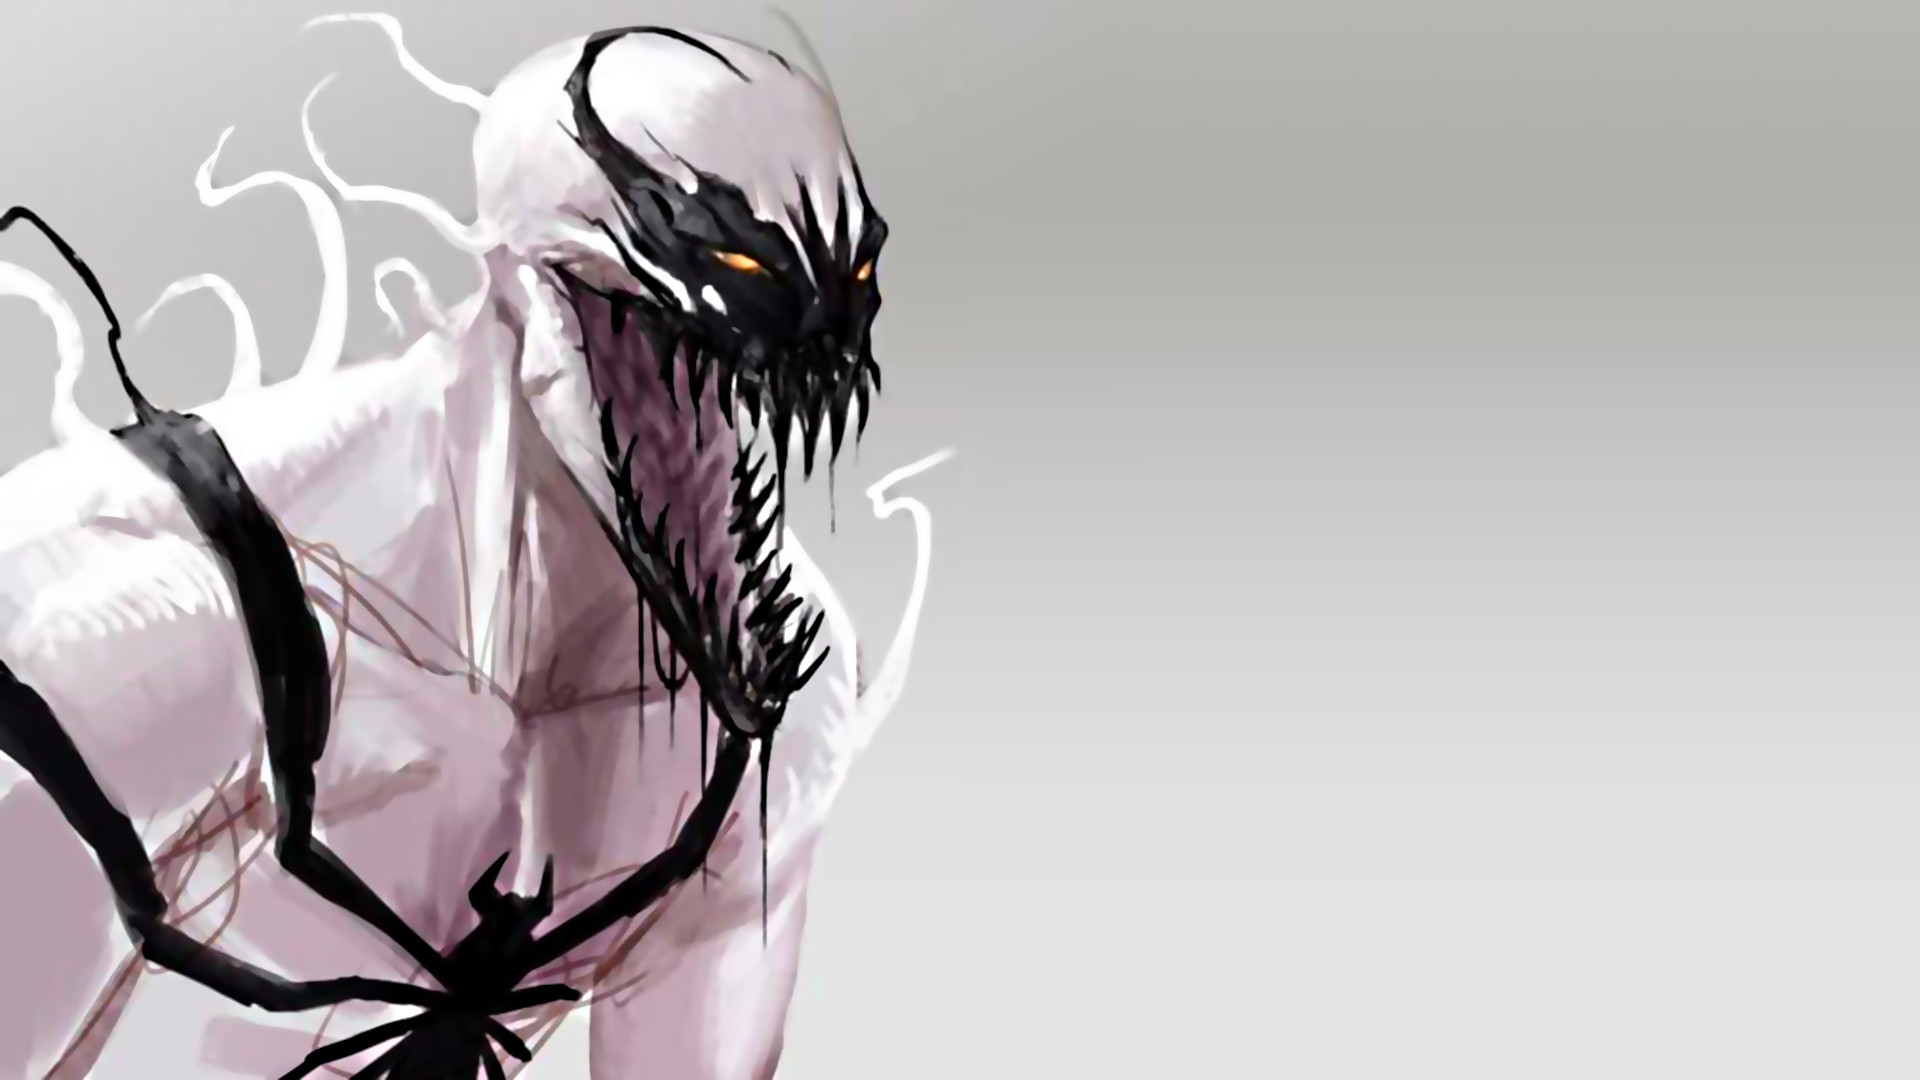 1920x1080 Anti Venom Wallpaper Iphone with HD Wallpaper Resolution  px 1.32  MB Movies 1080p Wallpapers Thunderbolts